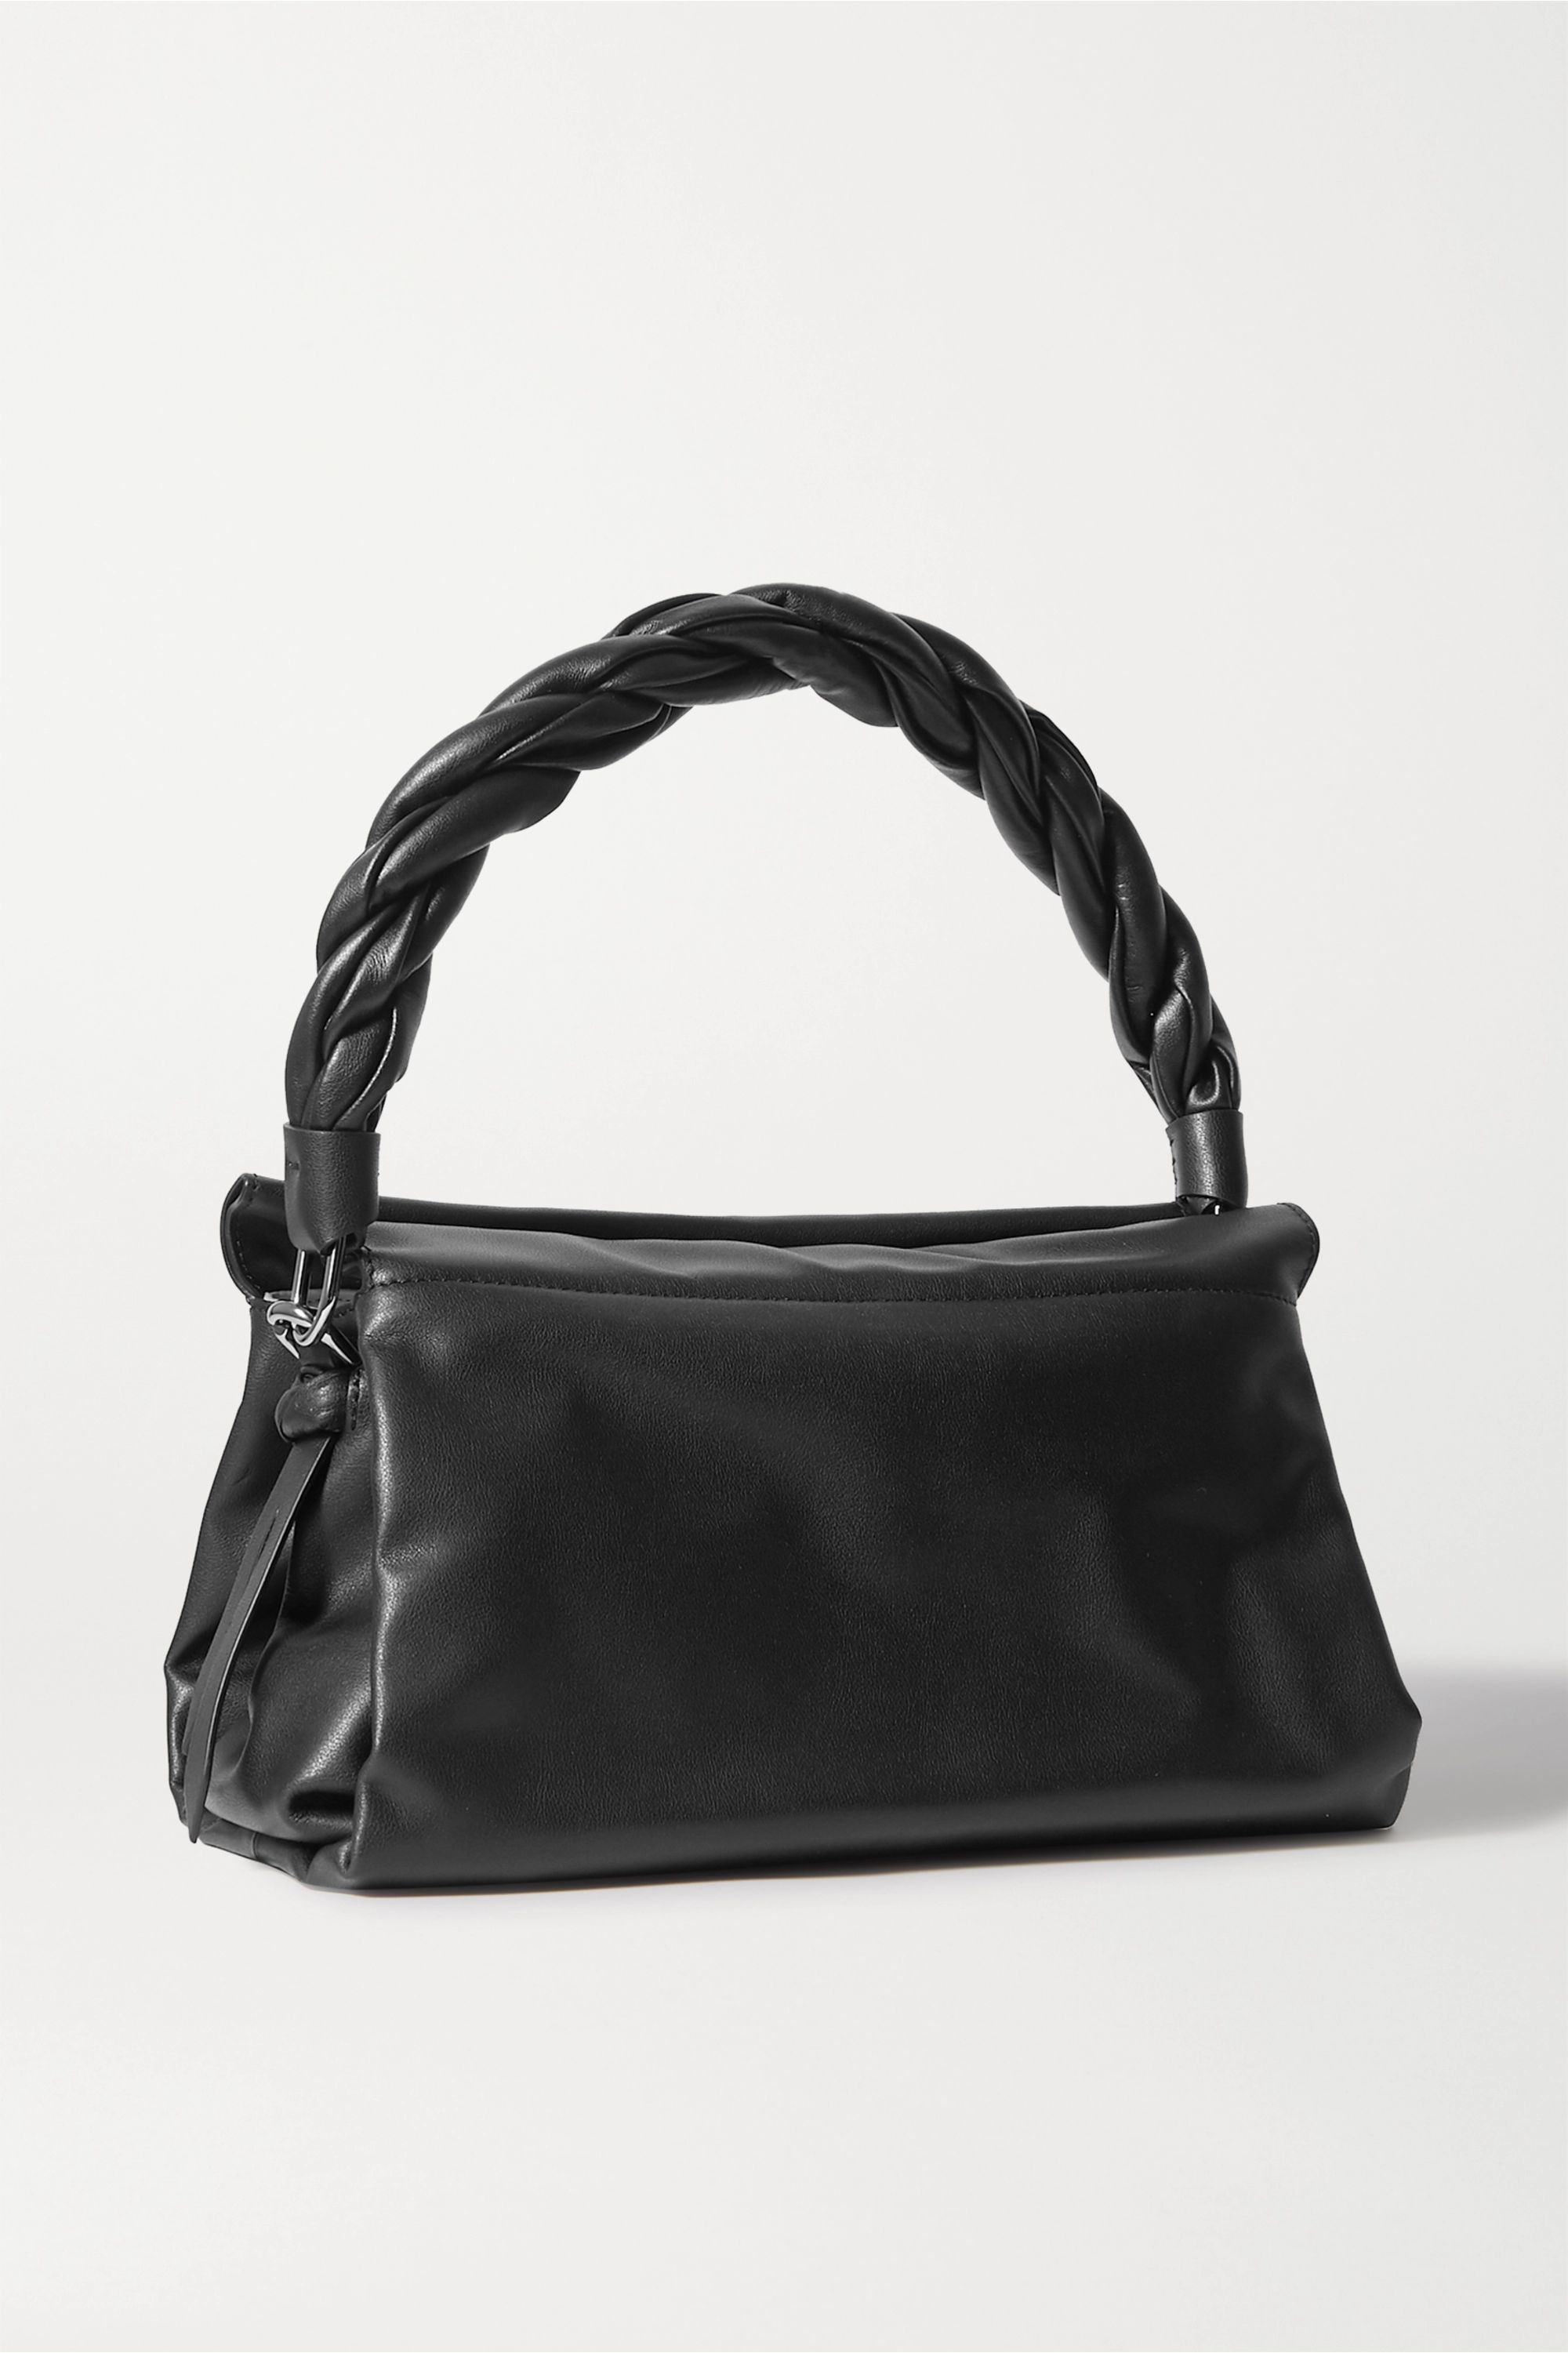 Givenchy ID93 medium leather shoulder bag